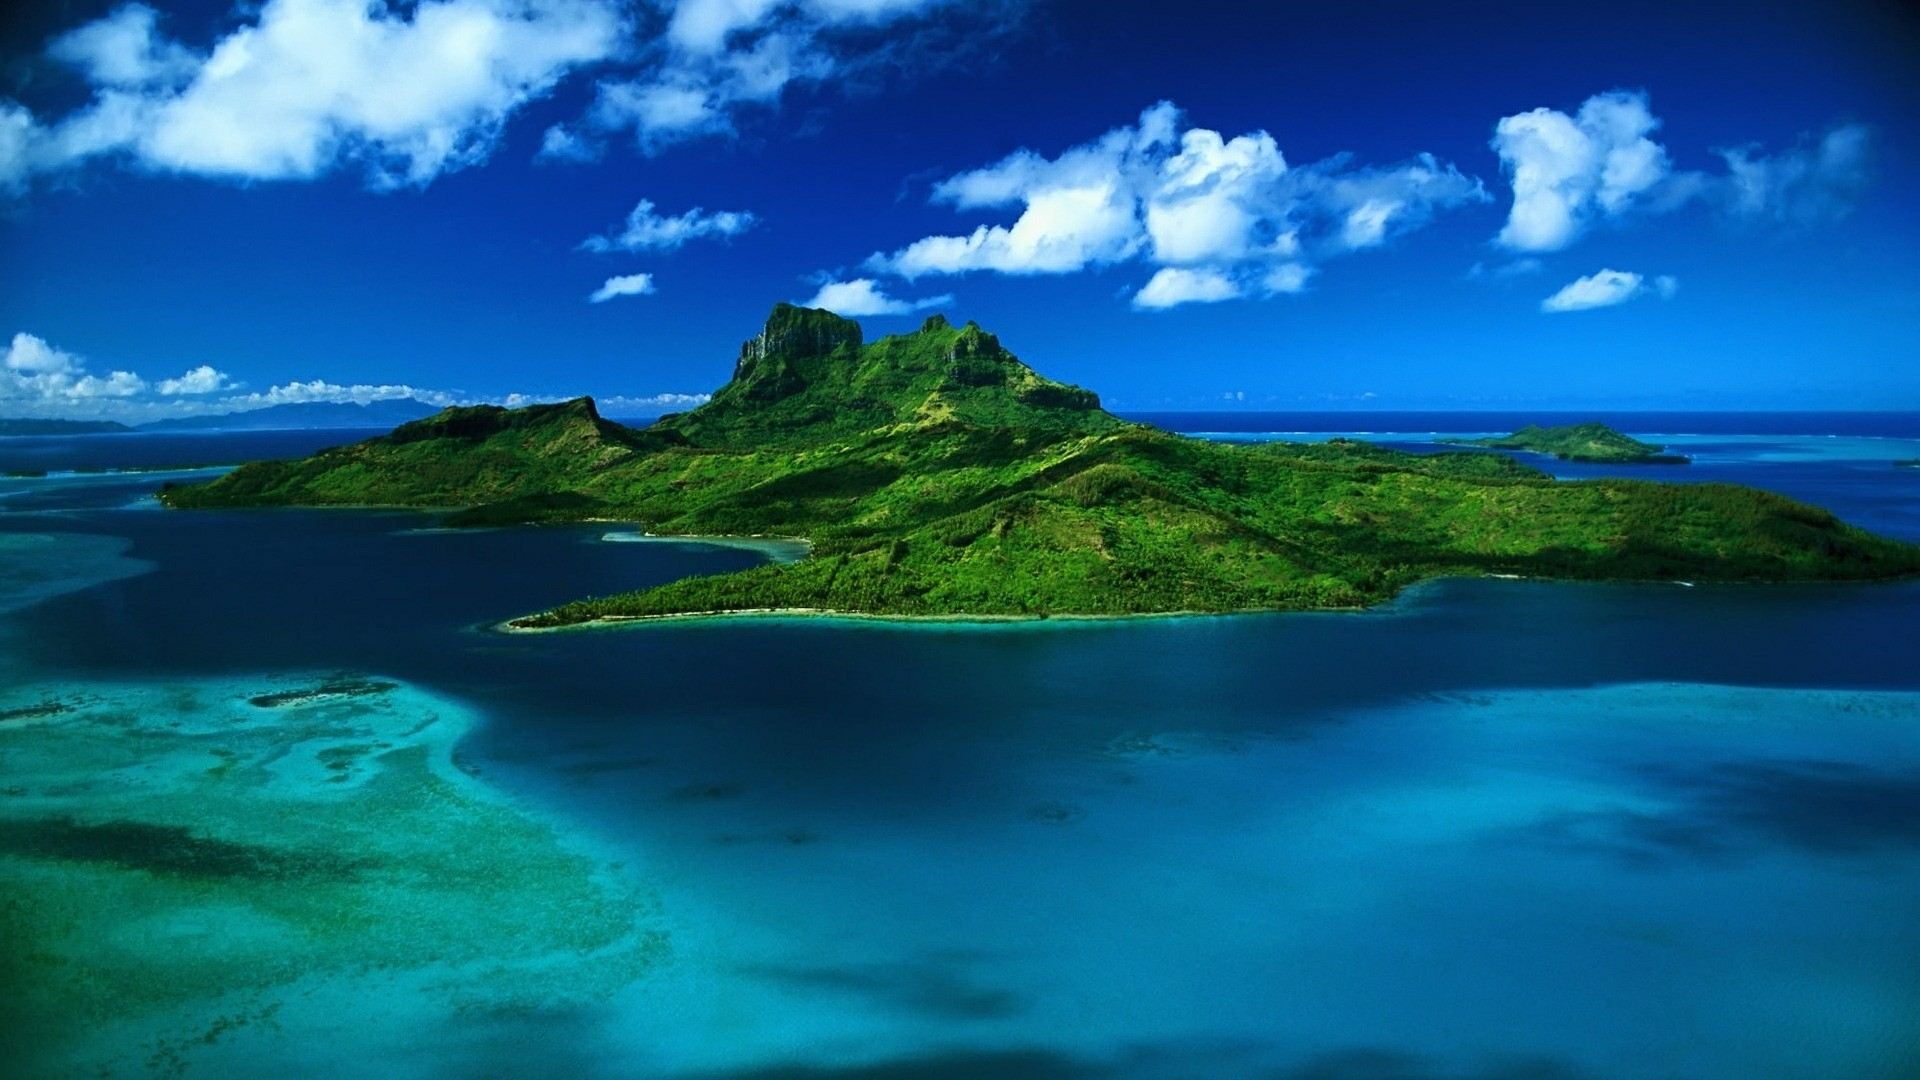 Res: 1920x1080, Mauritius Island On The Indian Ocean Wallpaper   Wallpaper Studio 10   Tens  of thousands HD and UltraHD wallpapers for Android, Windows and Xbox